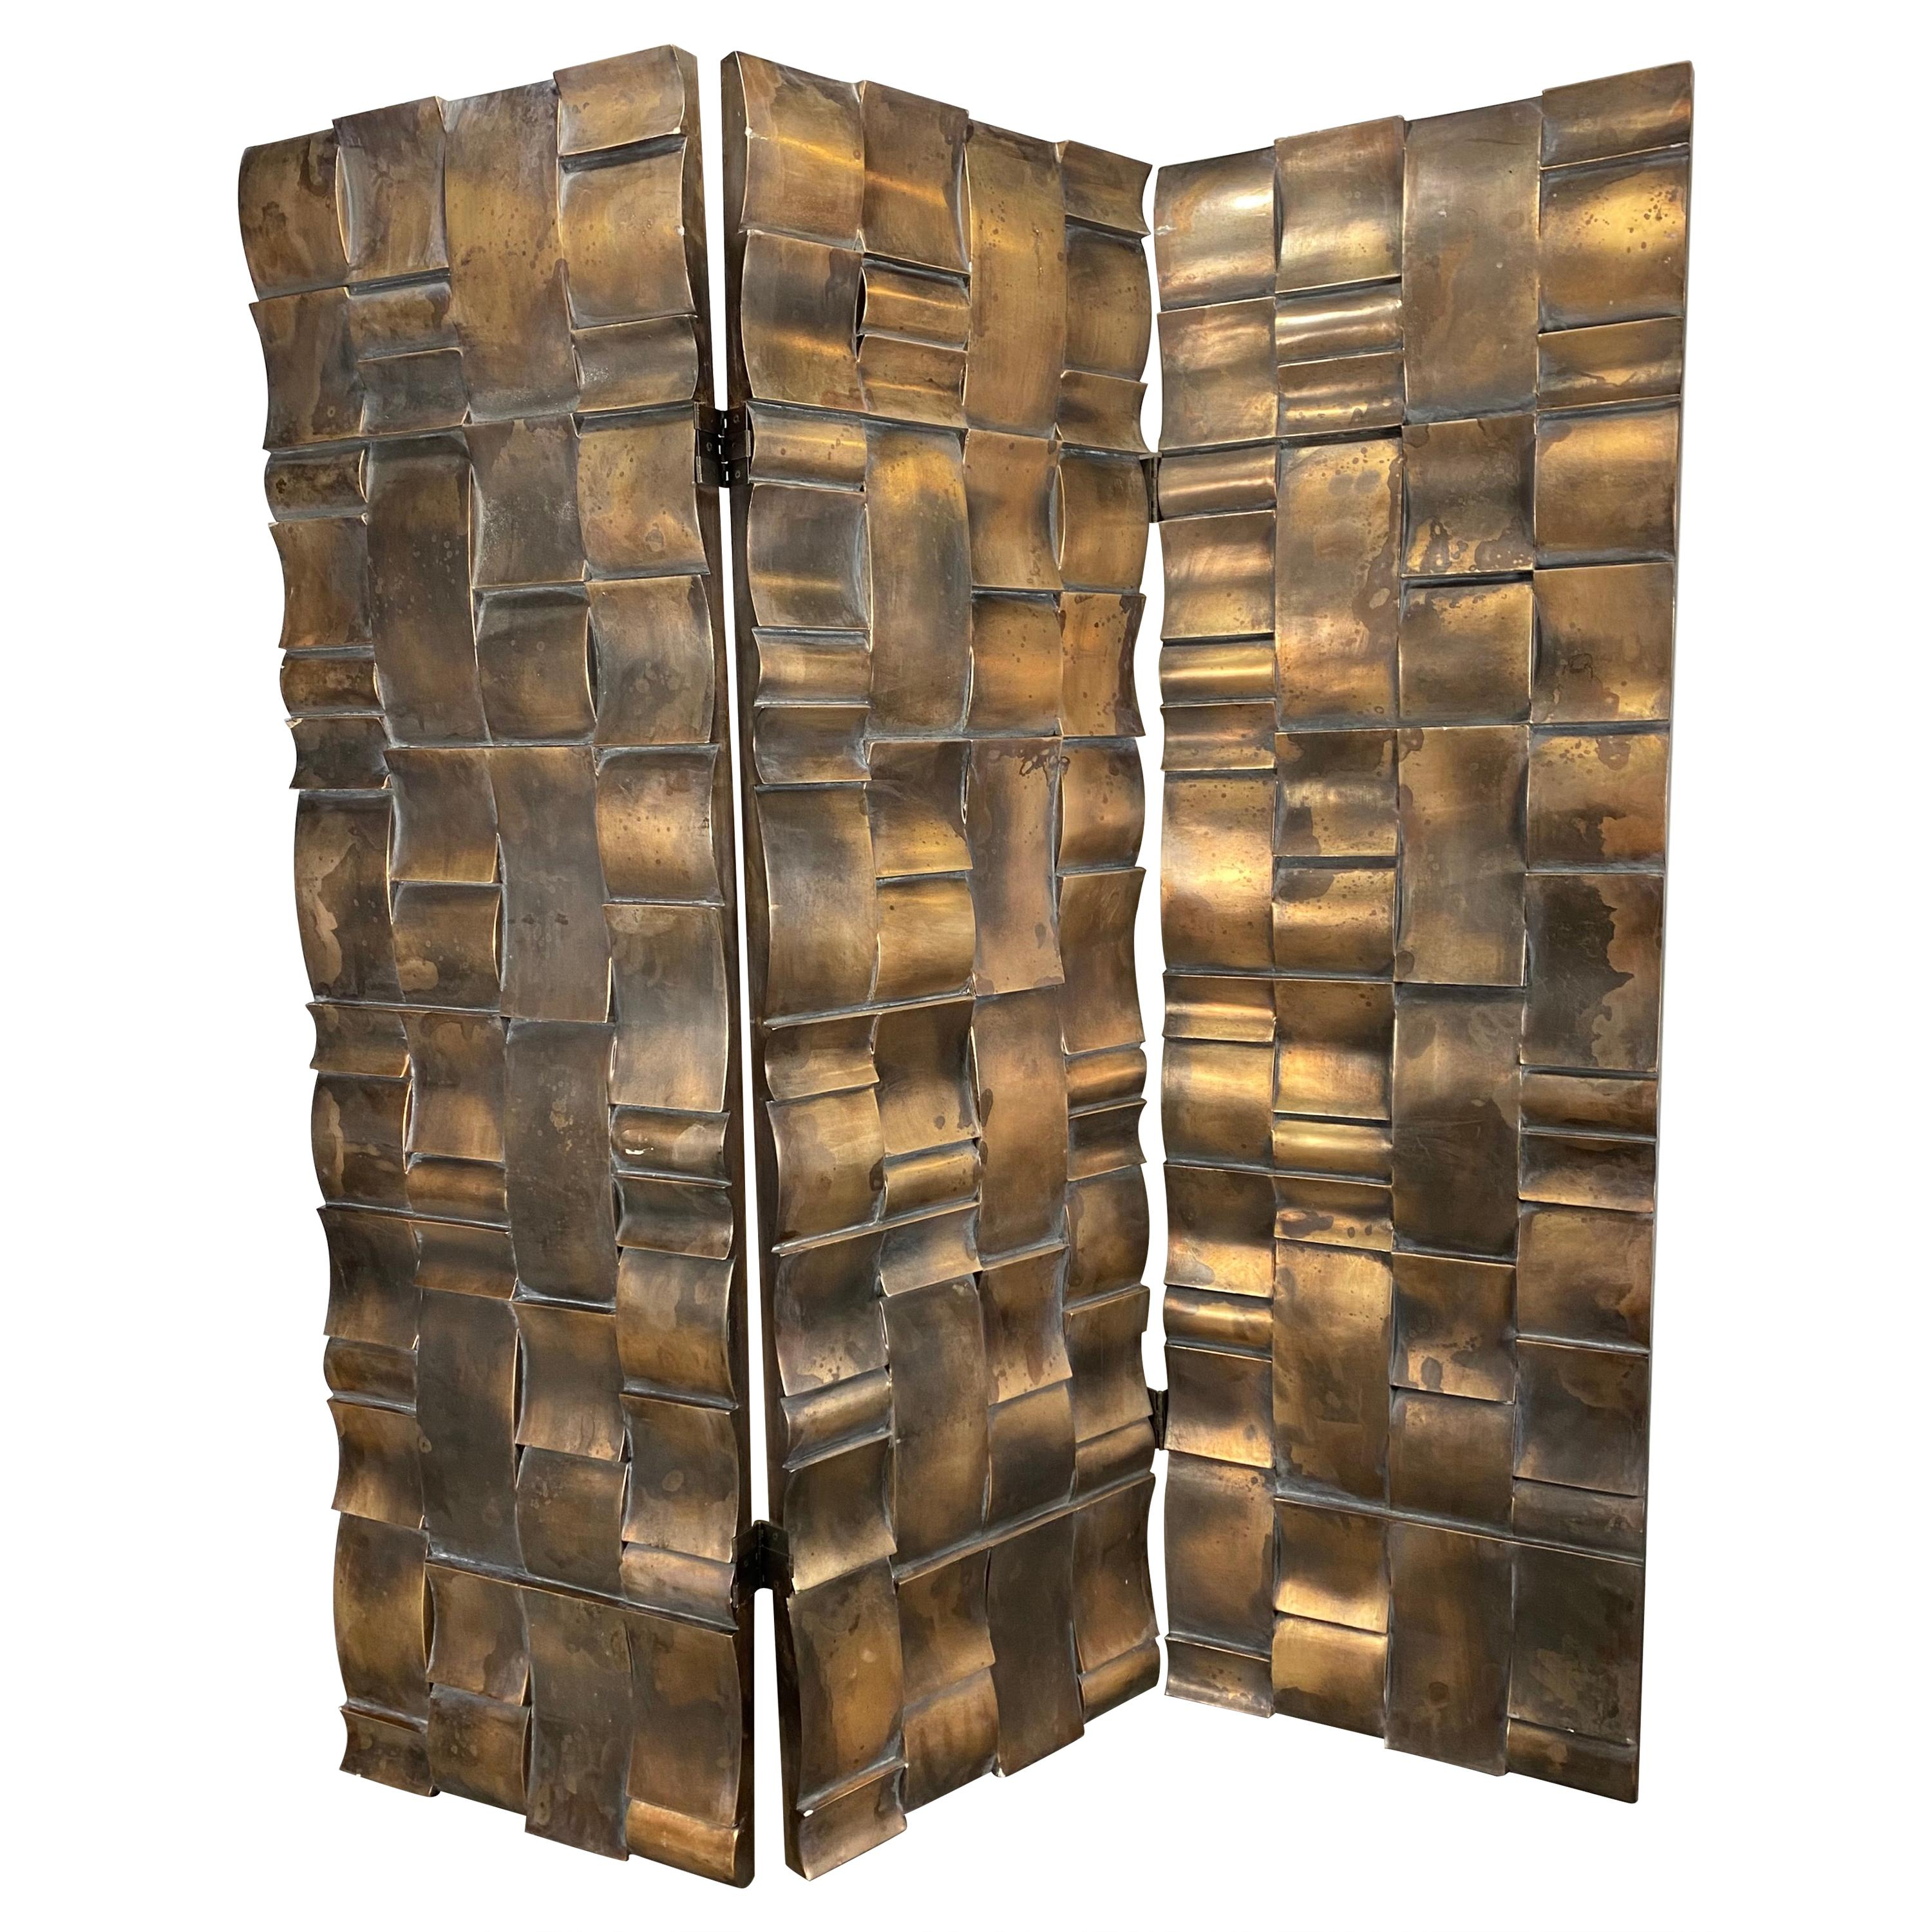 Brutalist 3-Panel Folding Screen or Room Divider, Sculpted Bronze Clad Resin